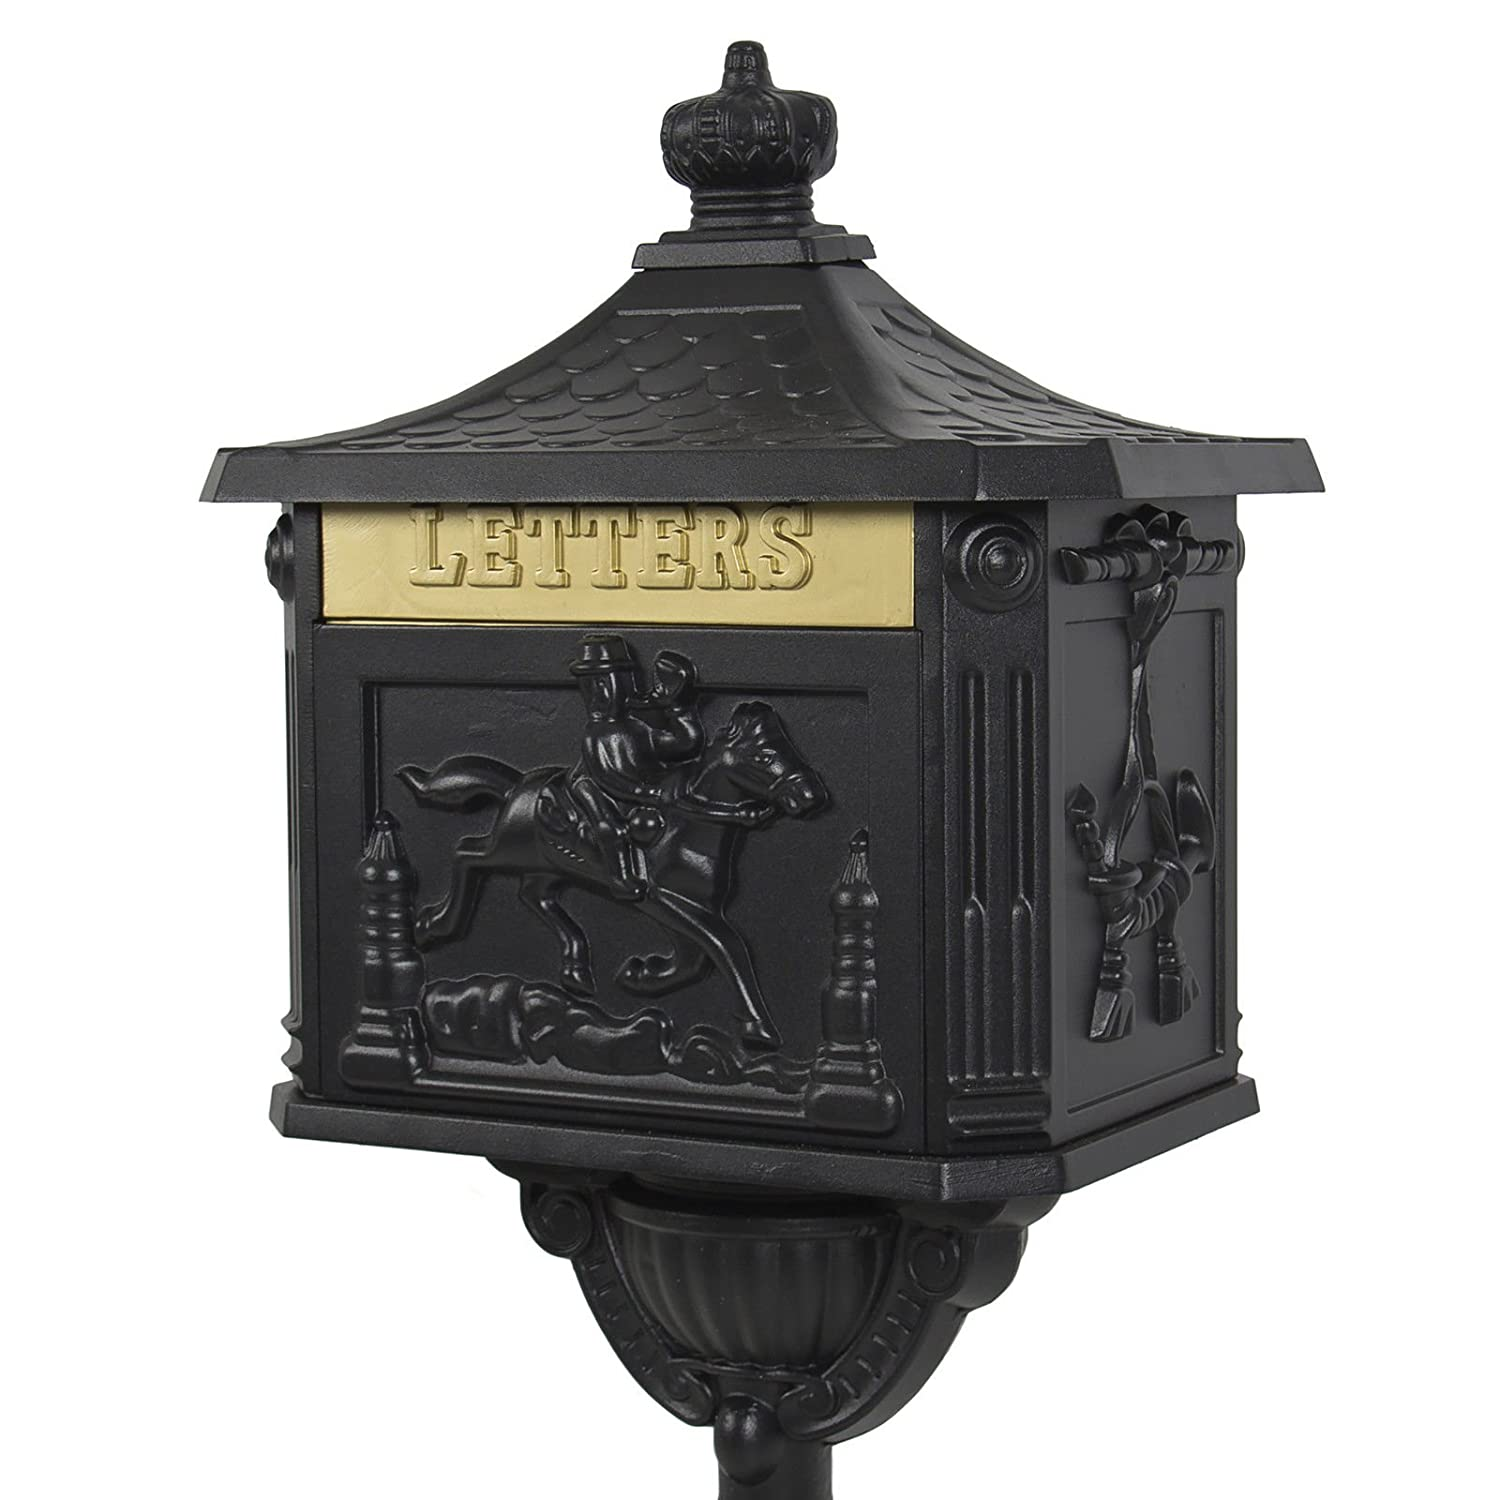 Amazon.com : Mailbox Cast Aluminum Black Mail Box Postal Box Security Heavy Duty New : Garden & Outdoor